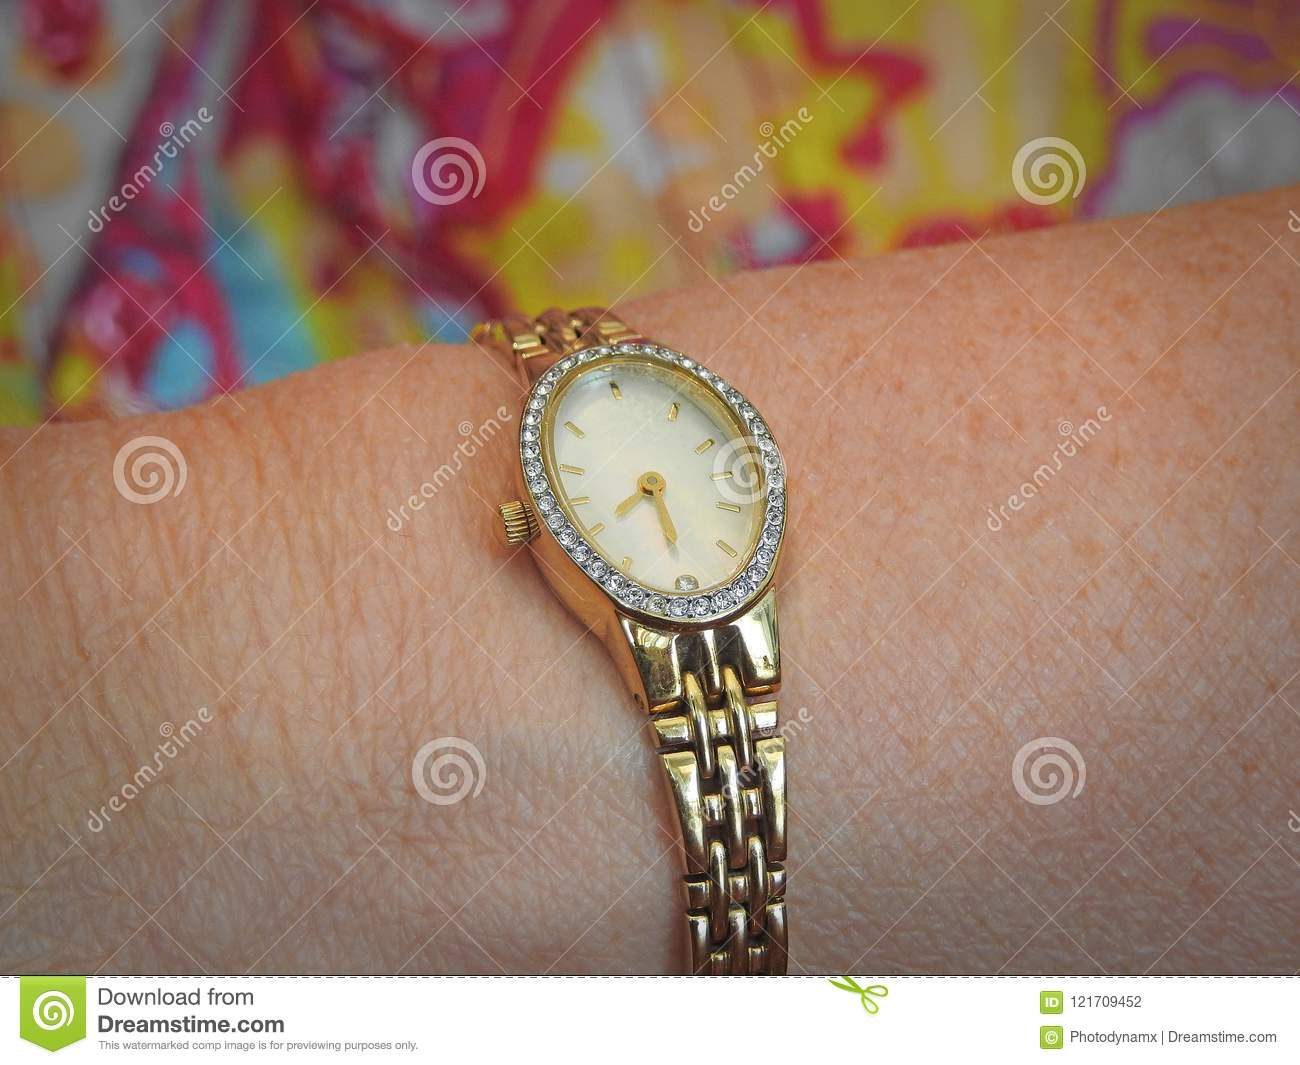 Oval Clock Face Ladies Gold Wristwatch Jewellery Timepiece Stock Photo Image Of